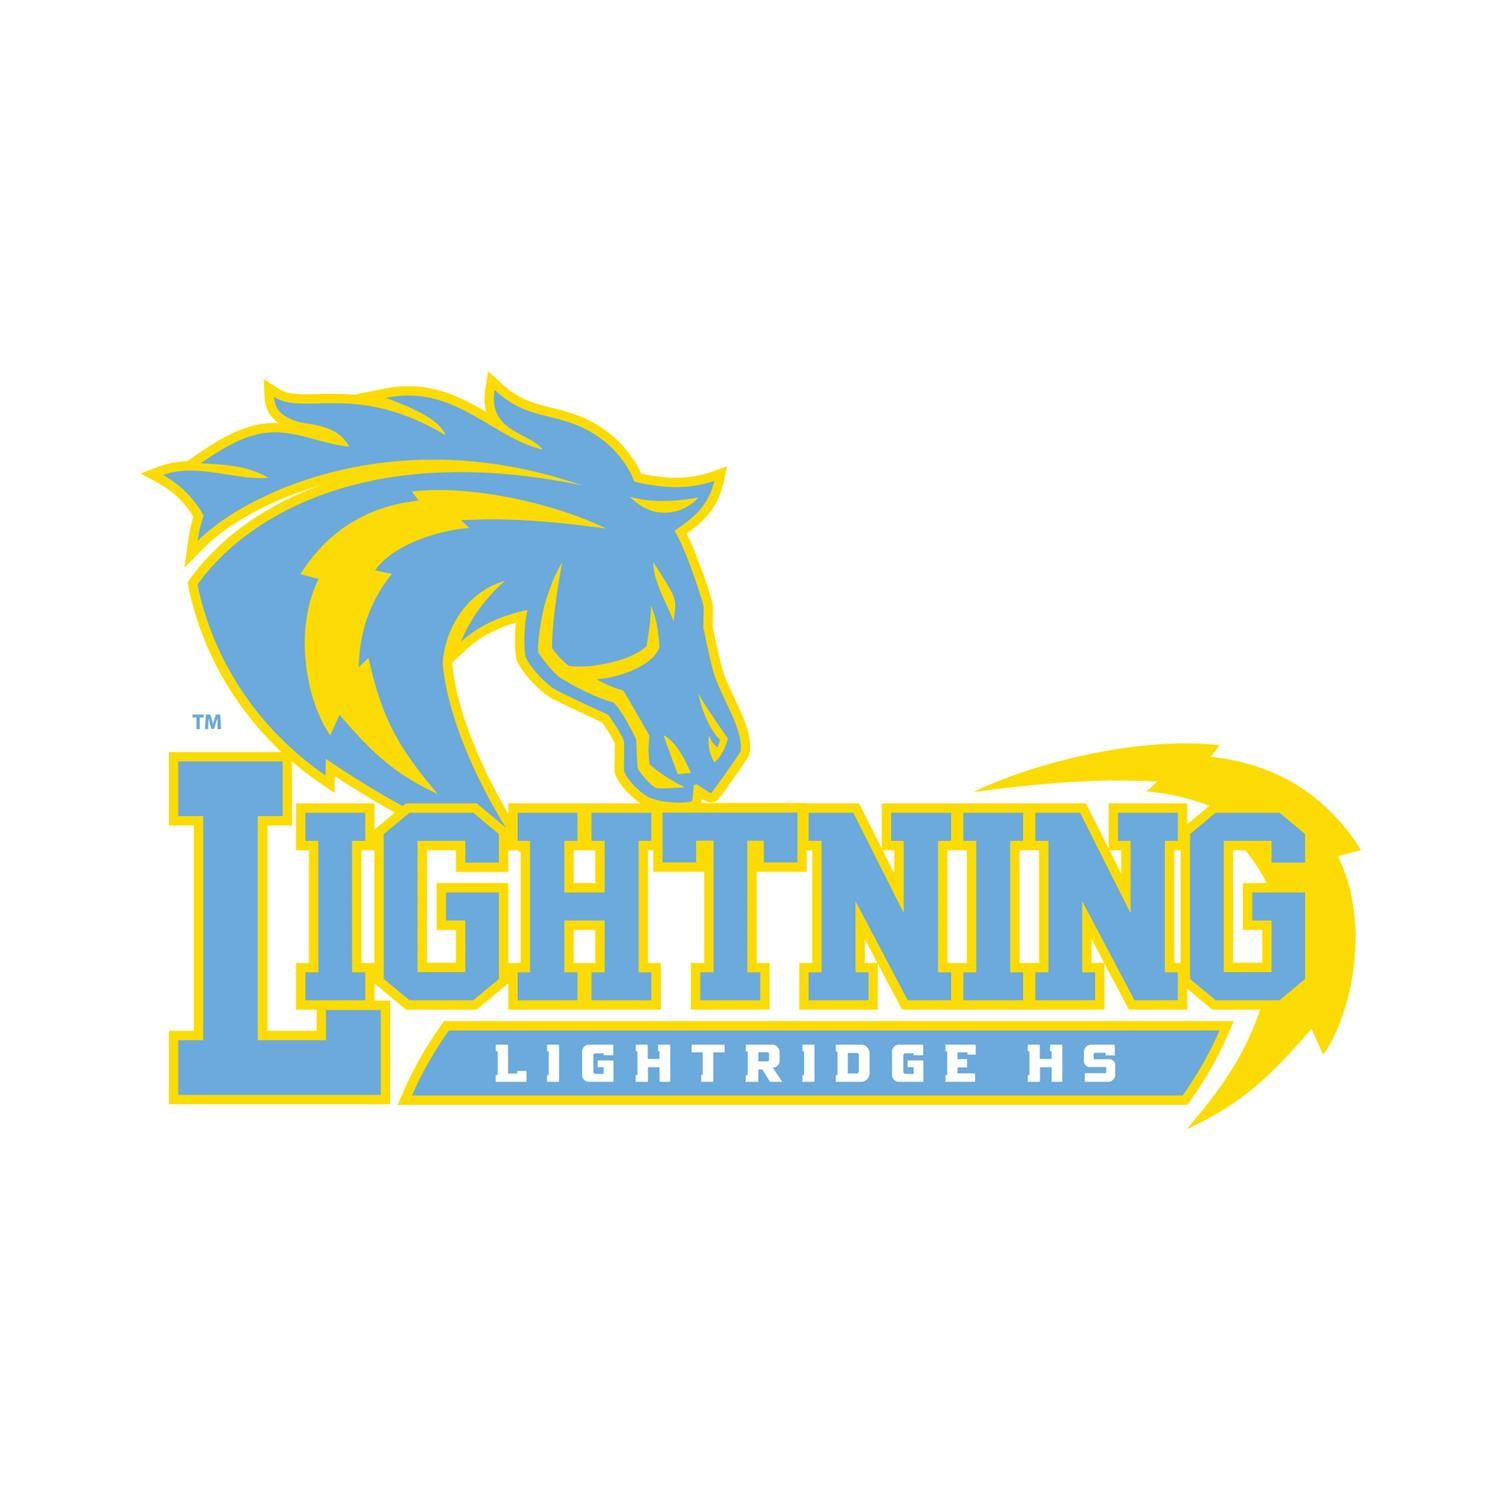 Official Lightridge Lightning symbol.